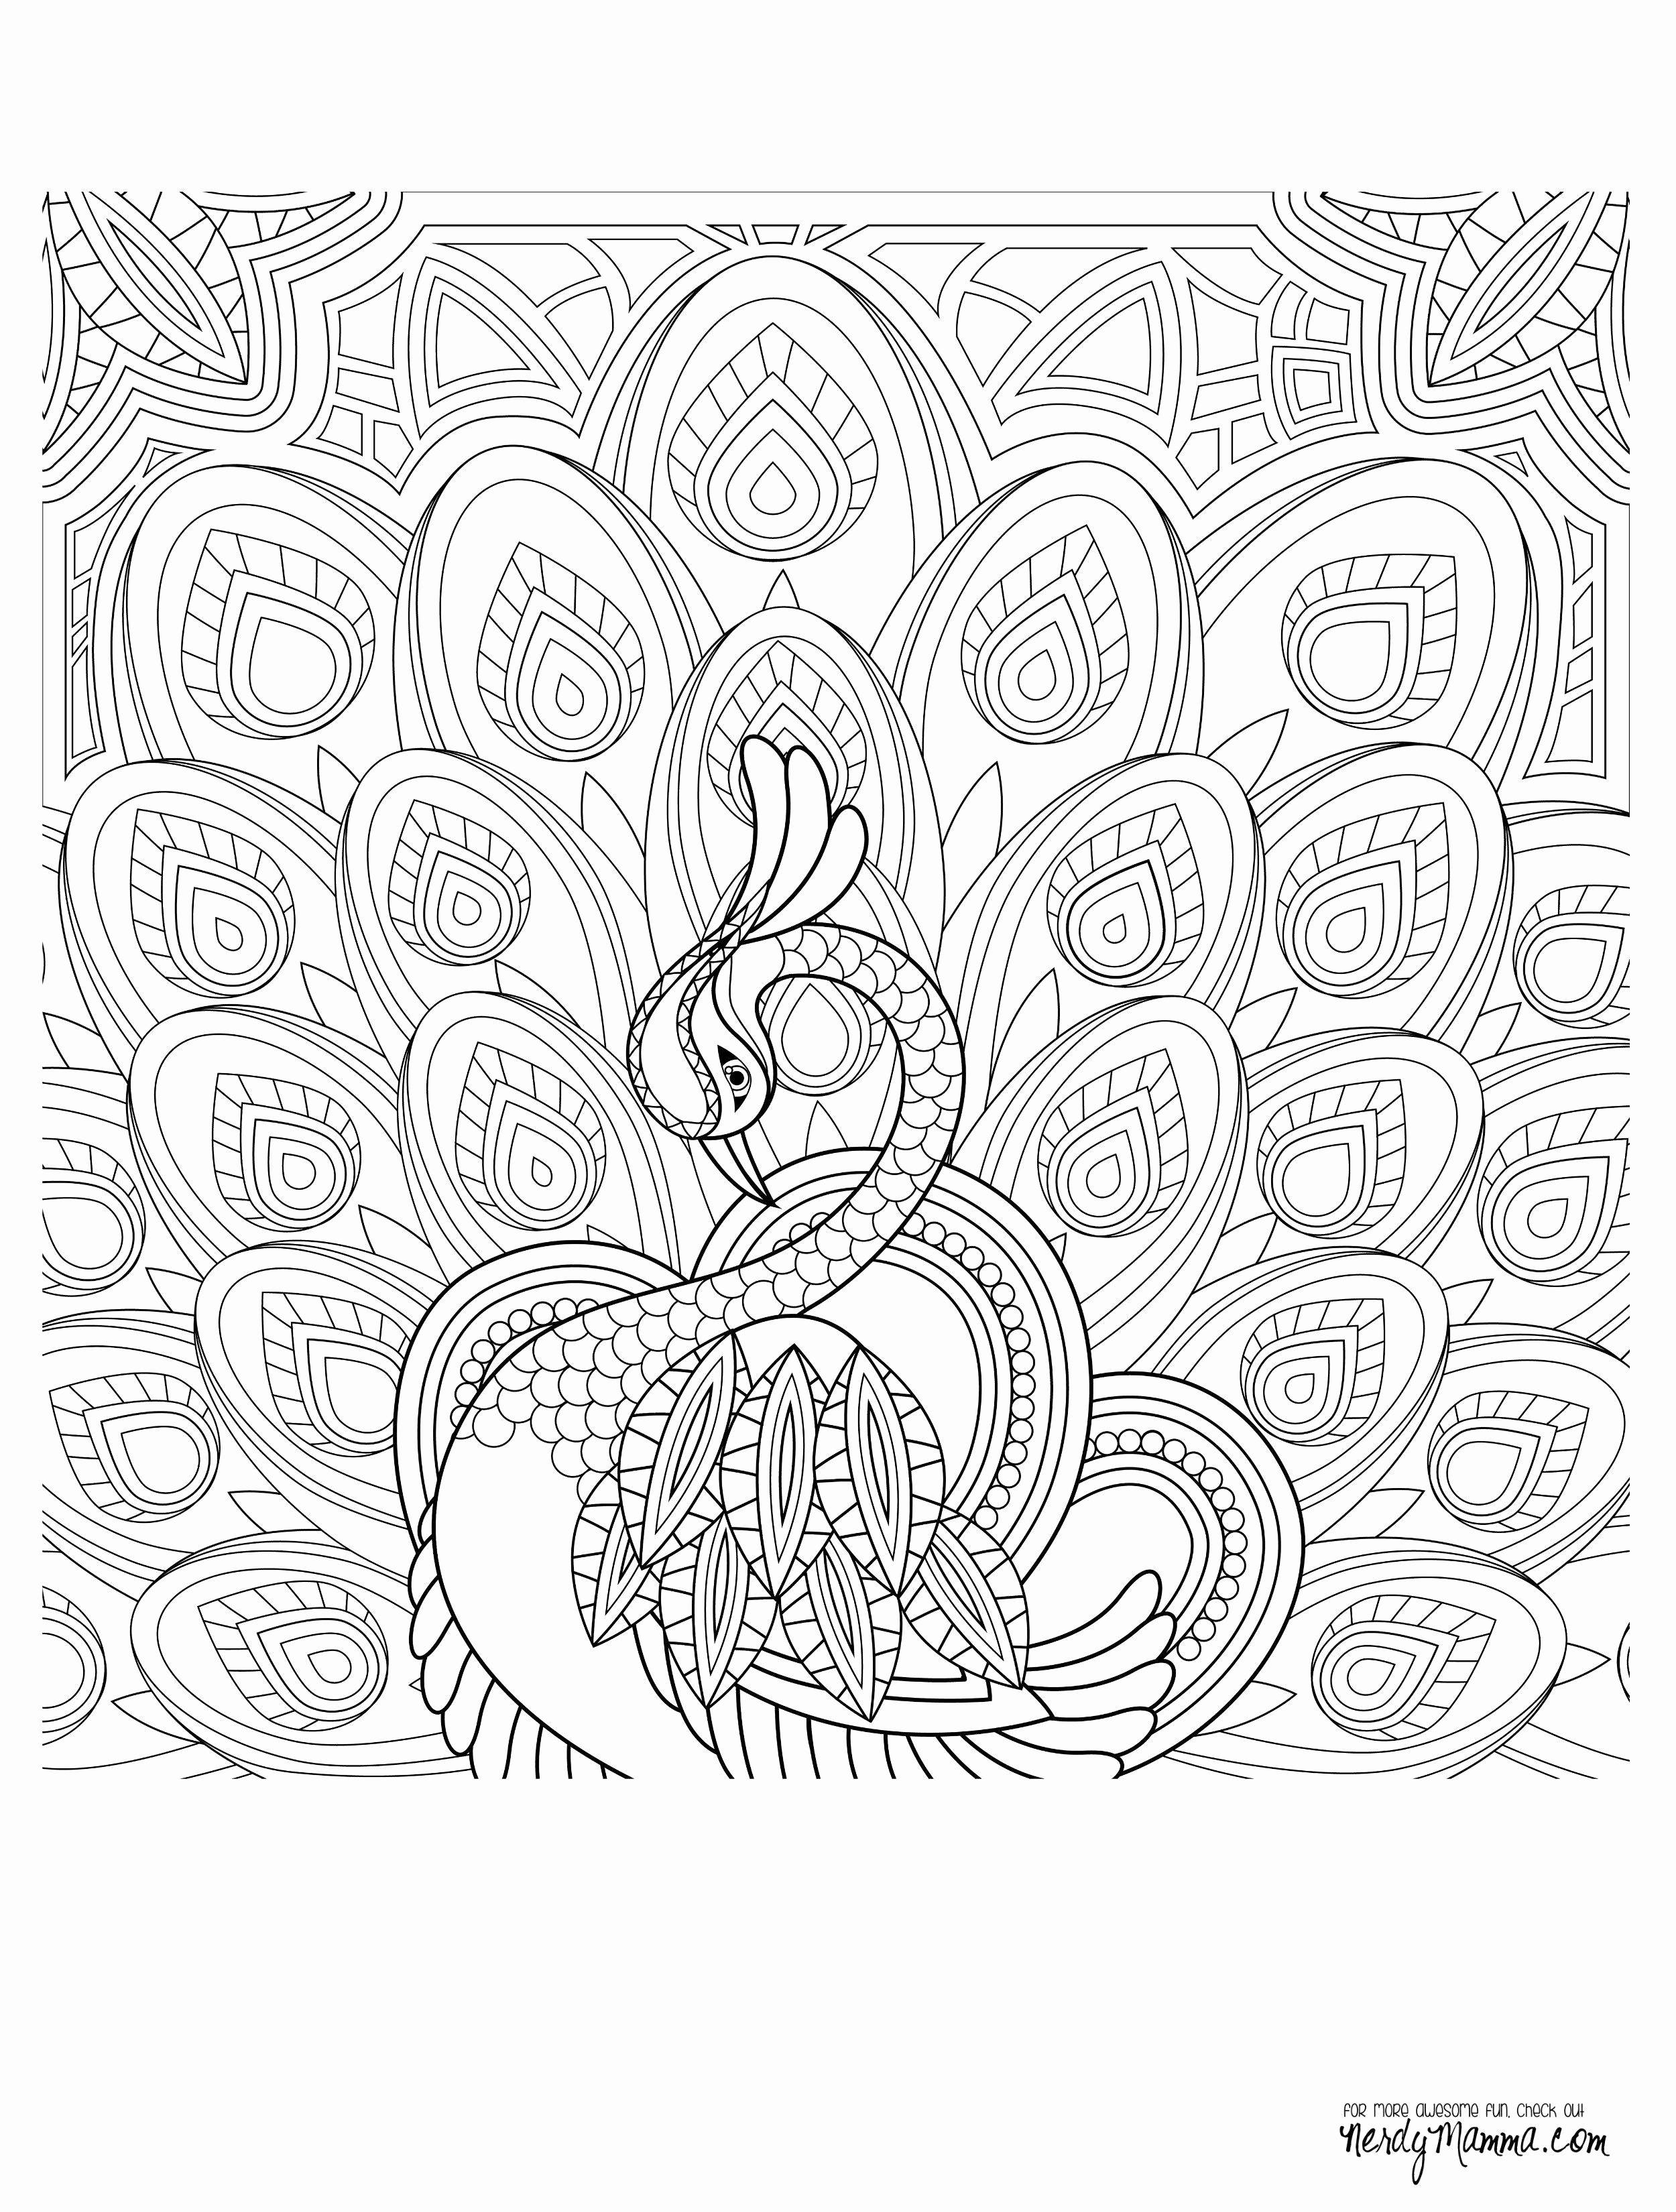 Chocolate Candy Coloring Pages  Printable 6d - Save it to your computer